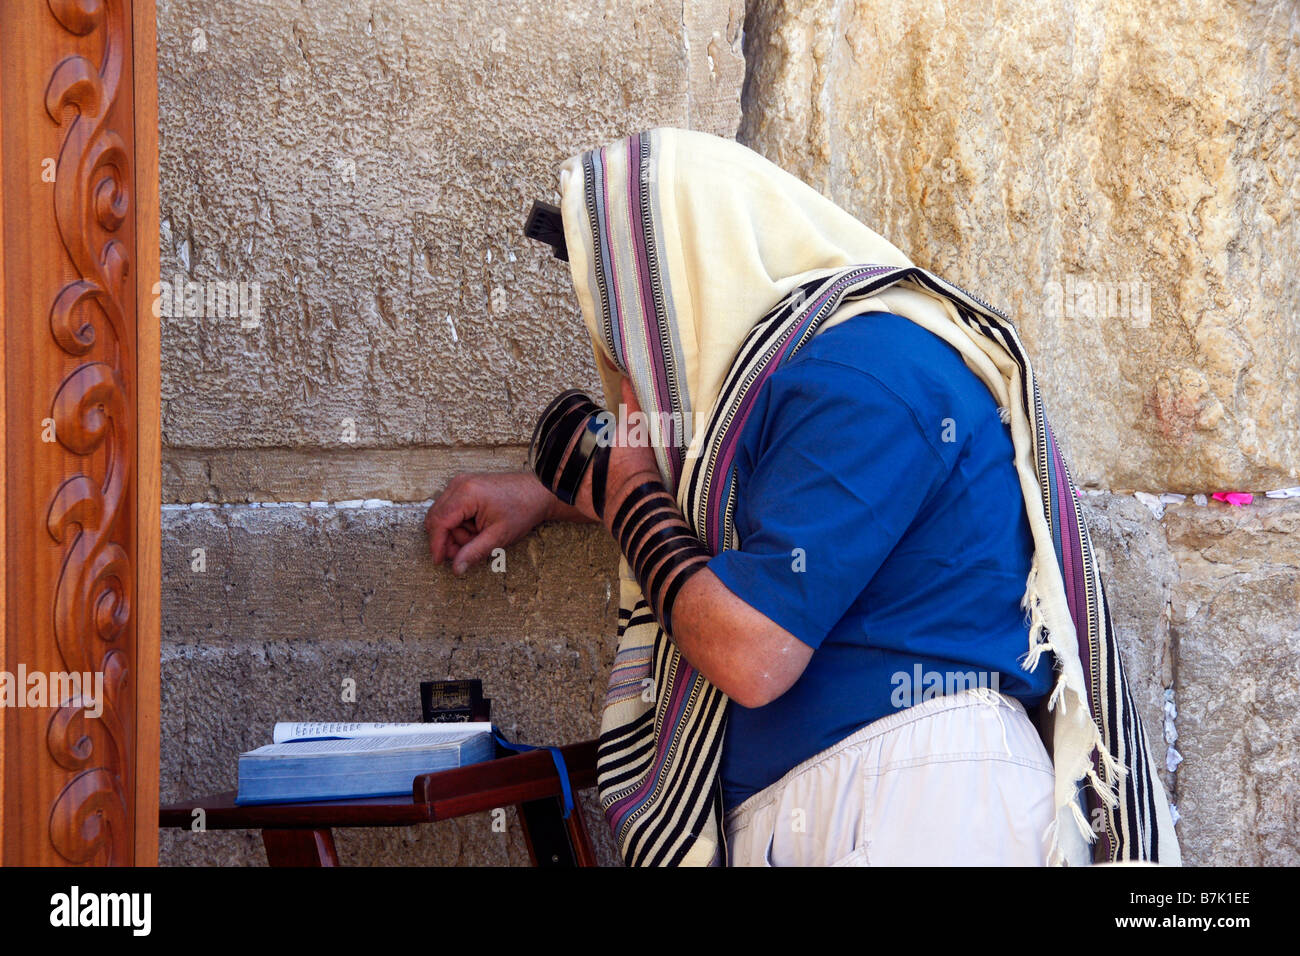 Orthodox Jew praying at the Western Wall in Jerusalem - Stock Image